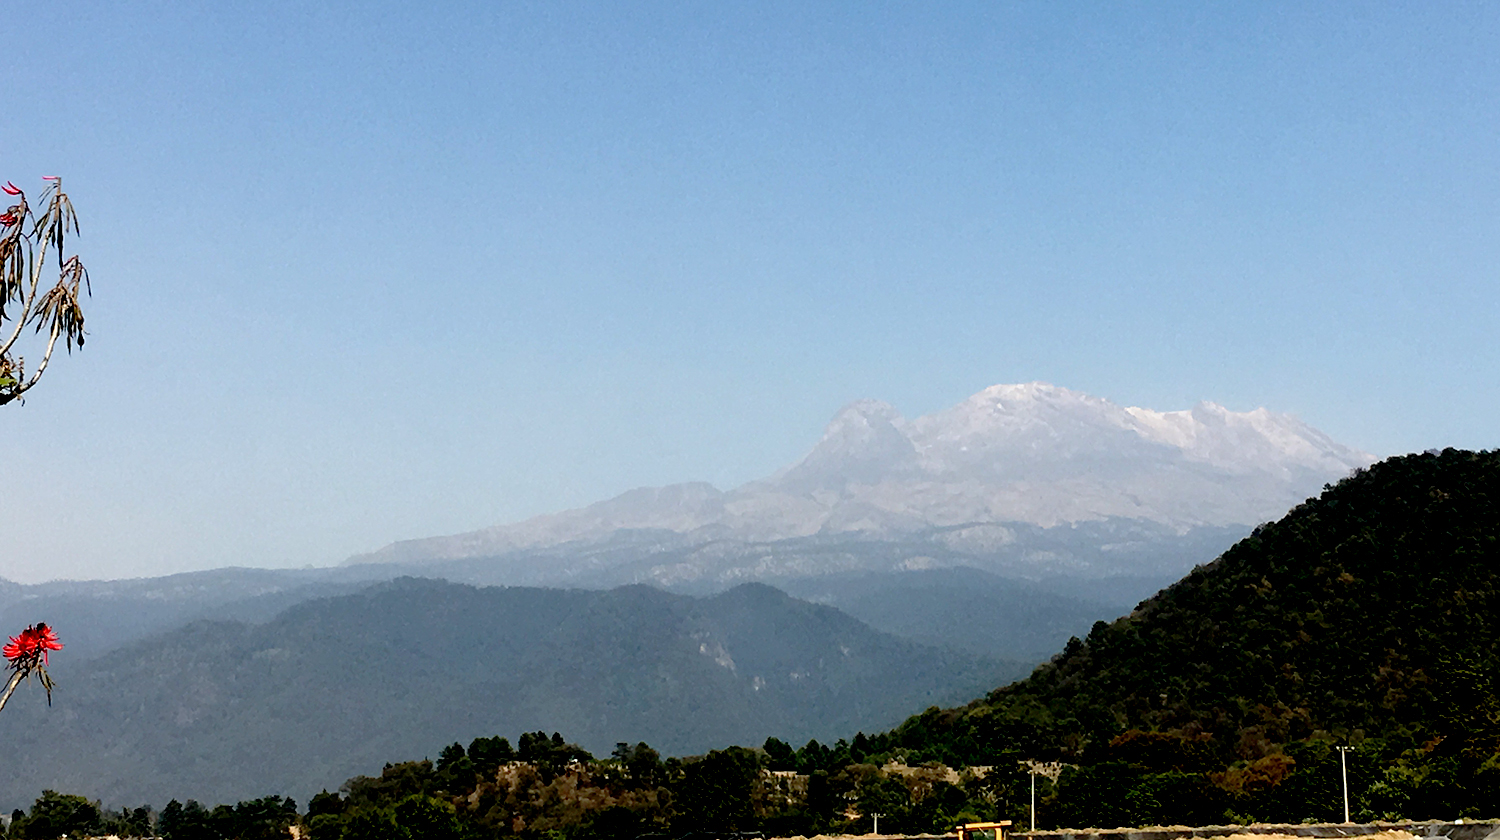 A view of Iztaccíhuatl from the restaurant Los Colorines.